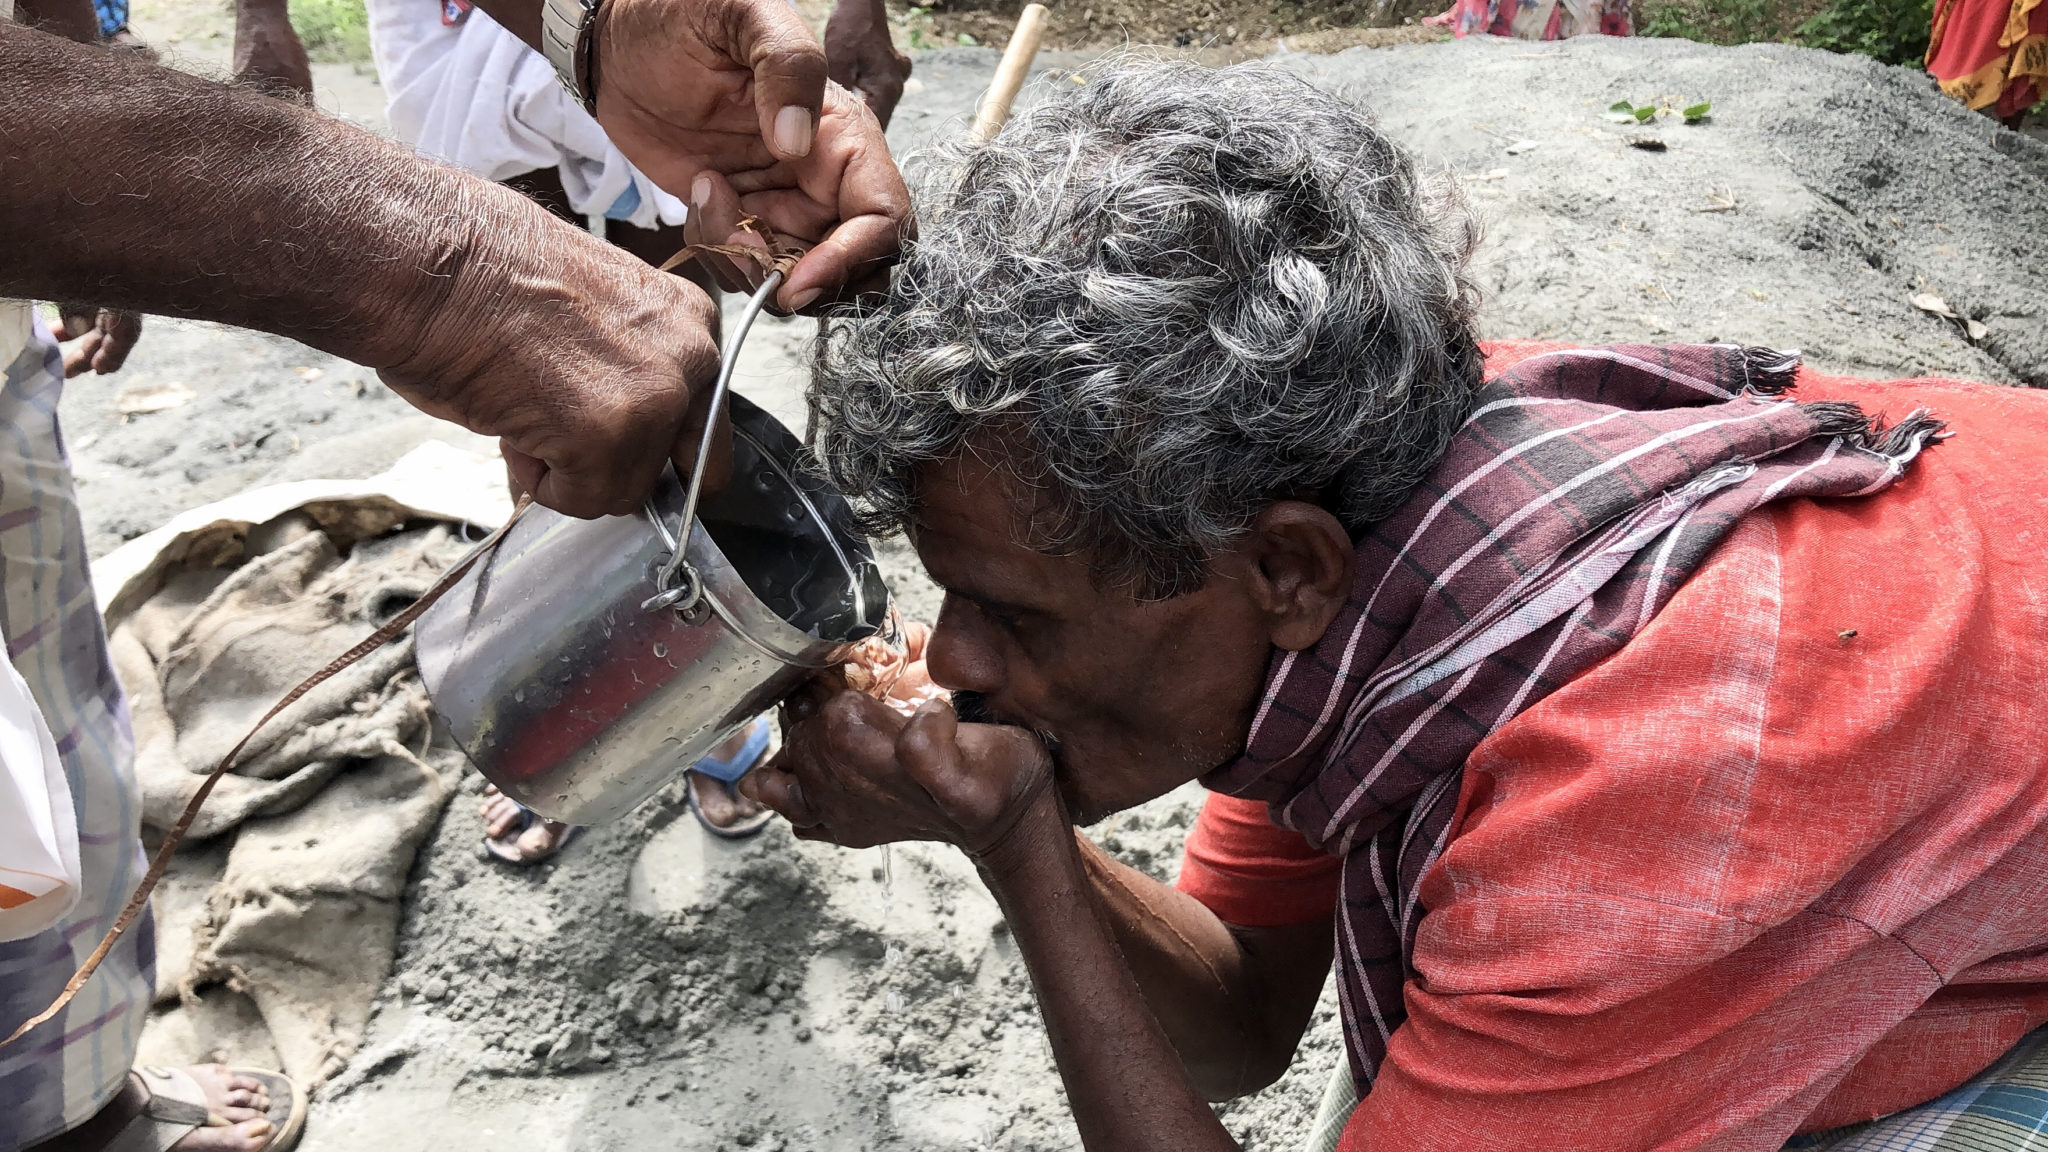 A gray-haired Indian man receives fresh water from a bucket into his cupped hands.